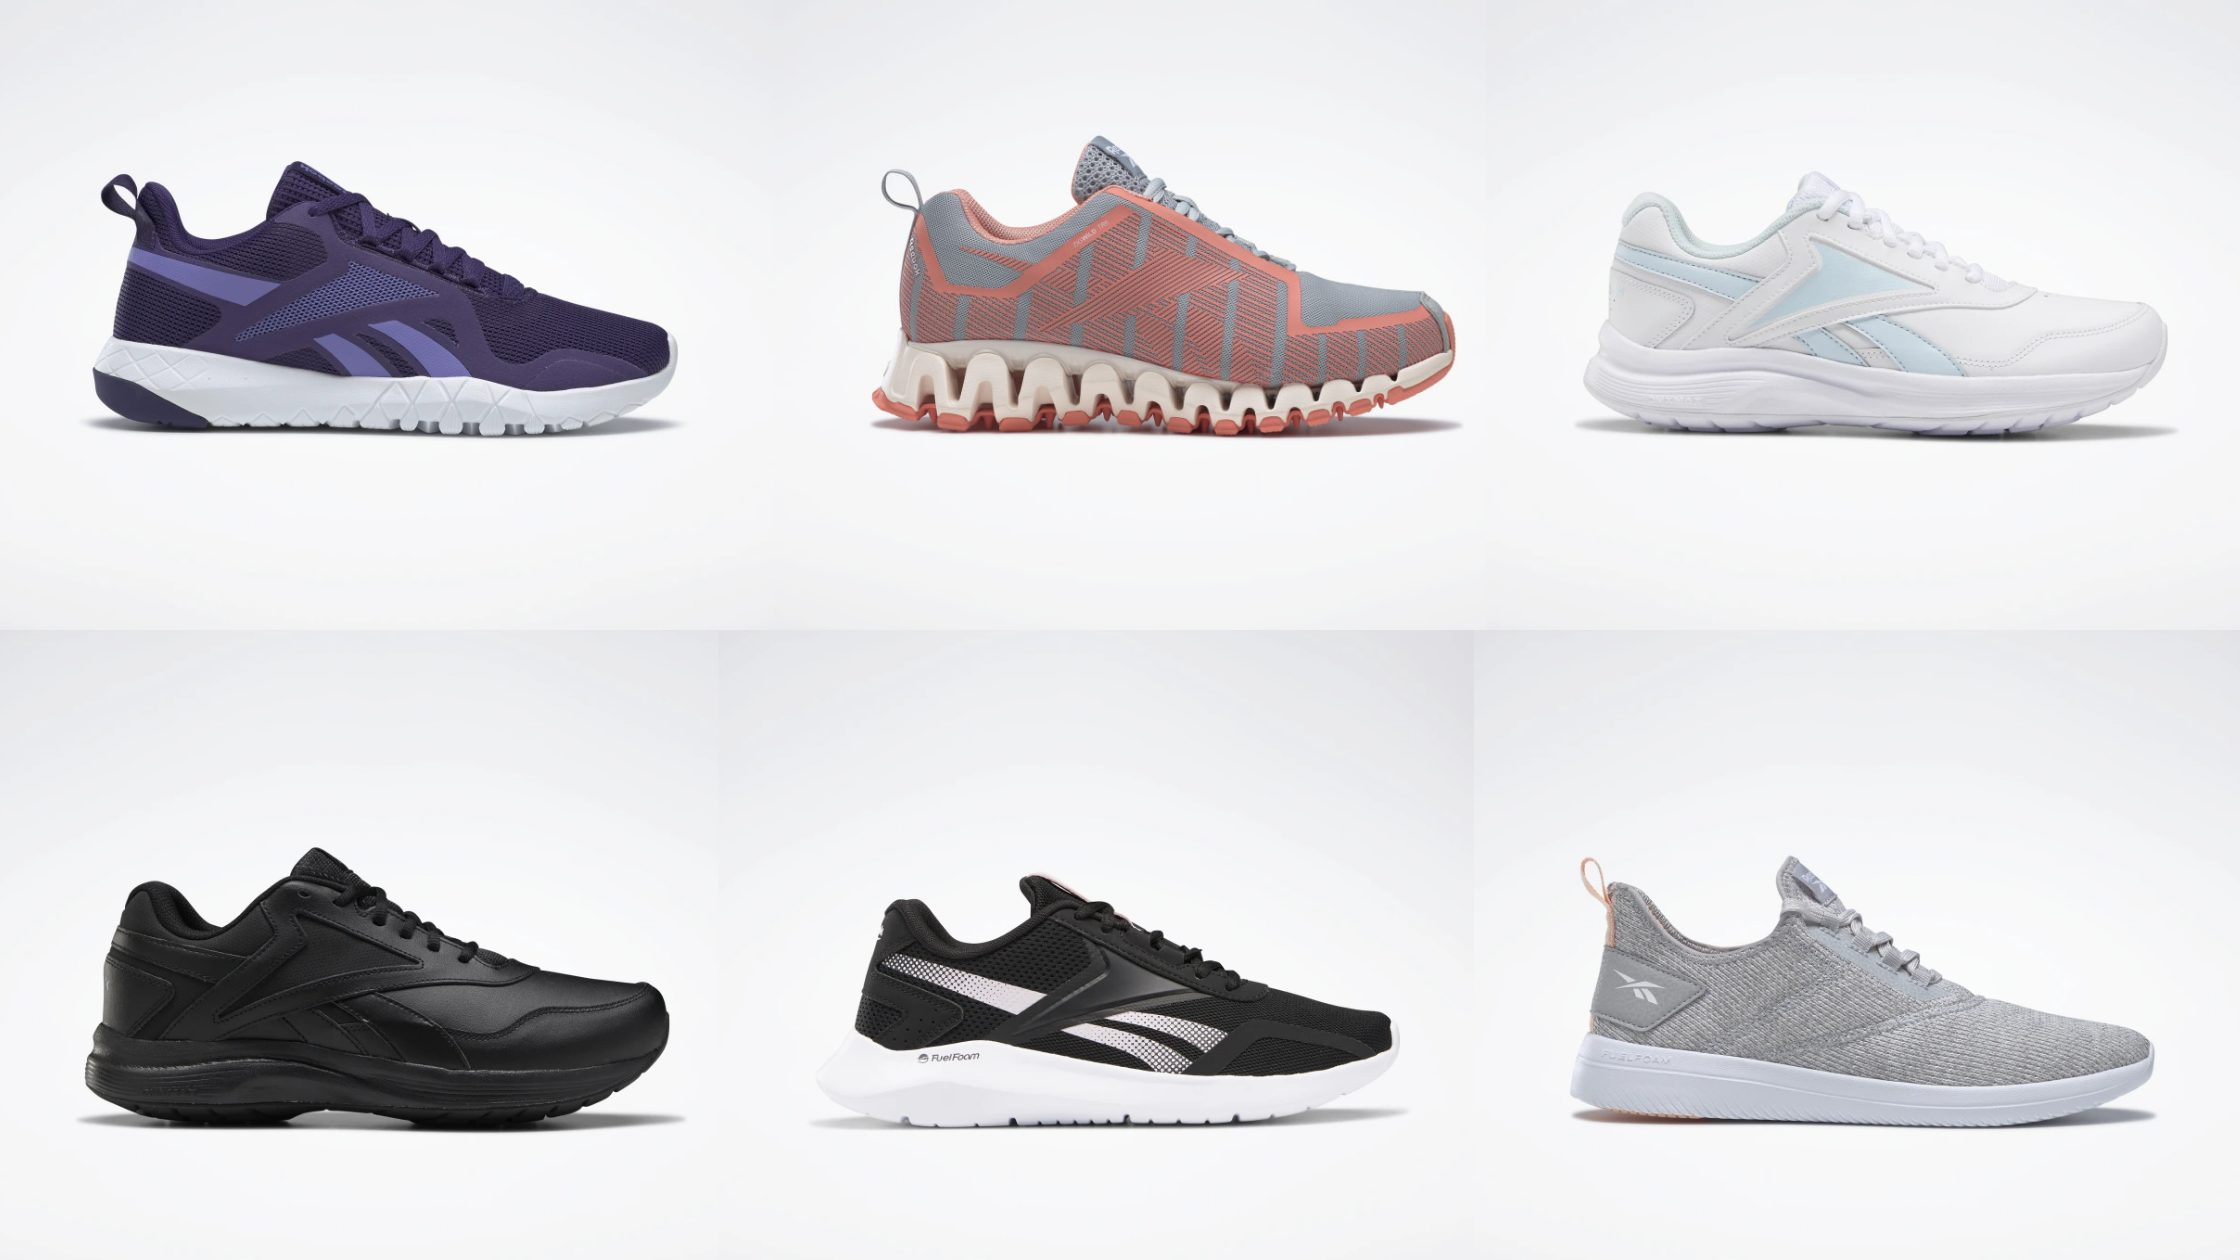 10 Best Walking Shoes for Women – Why you need reebok sneakers